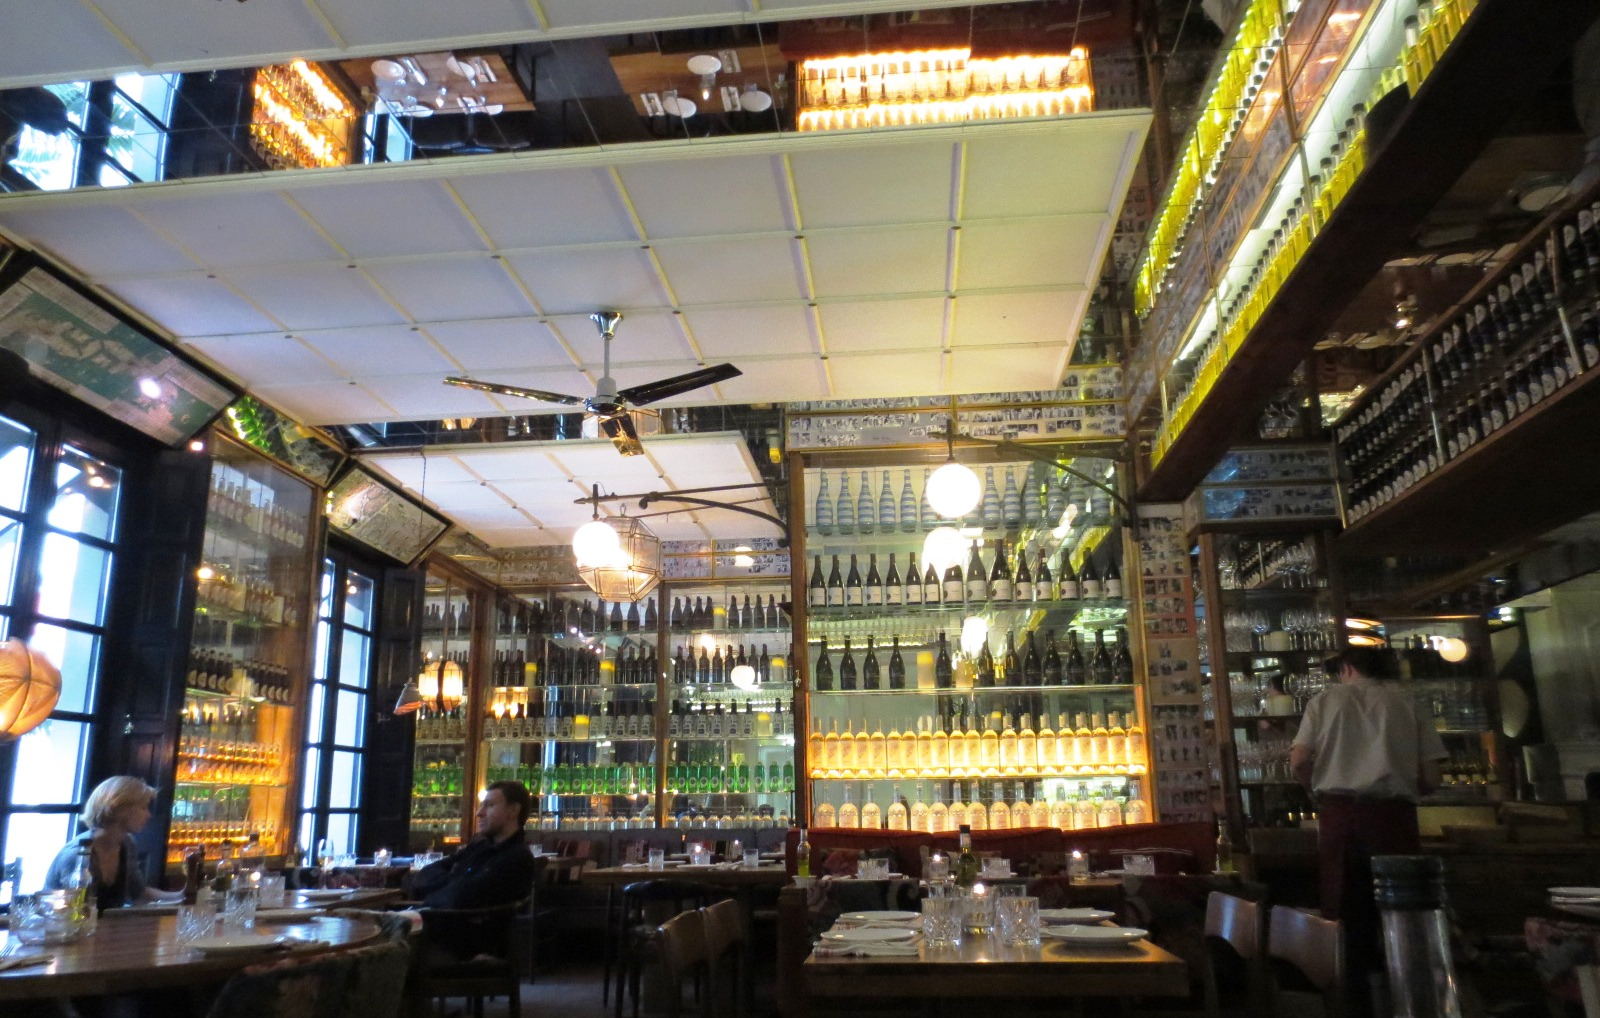 Boca-Grande-restaurang-Barcelona-travelgrip- (5)